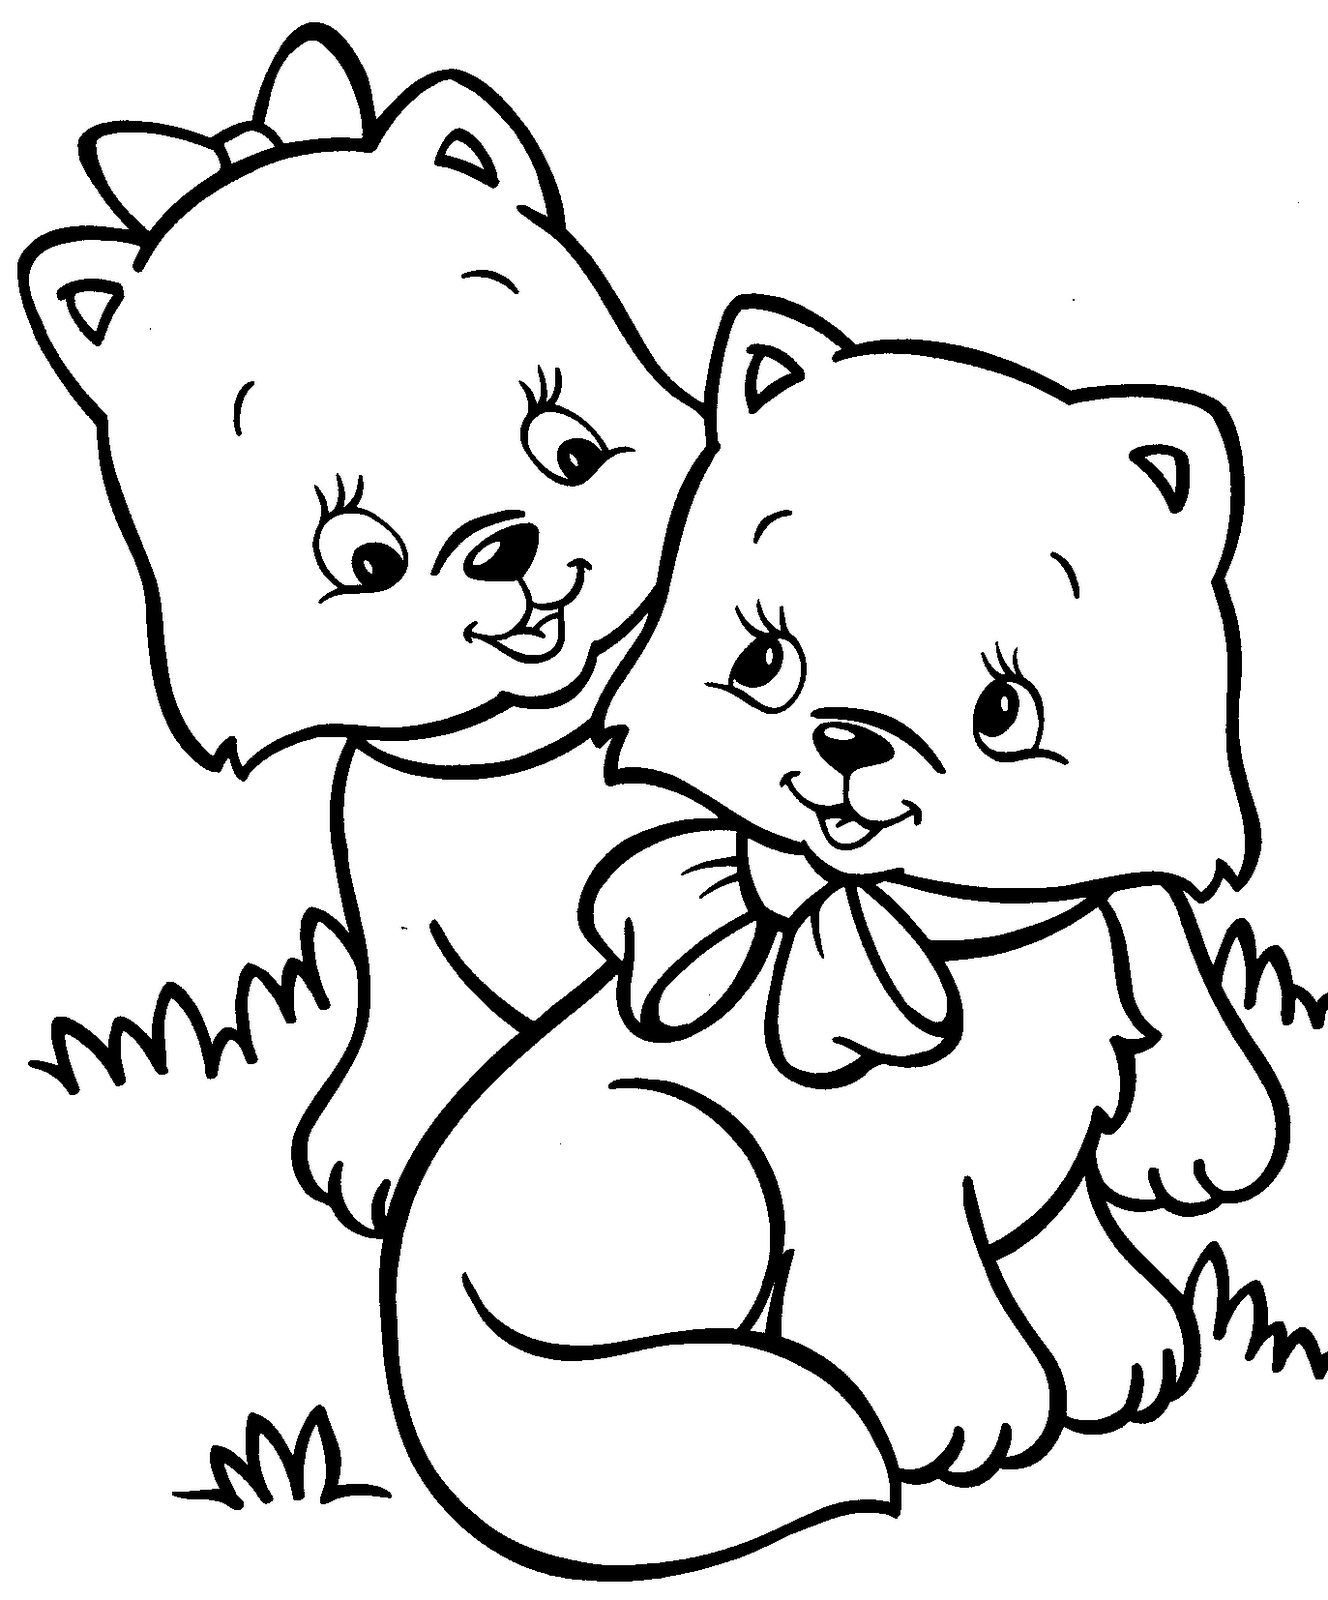 coloring pages toddler - photo#15